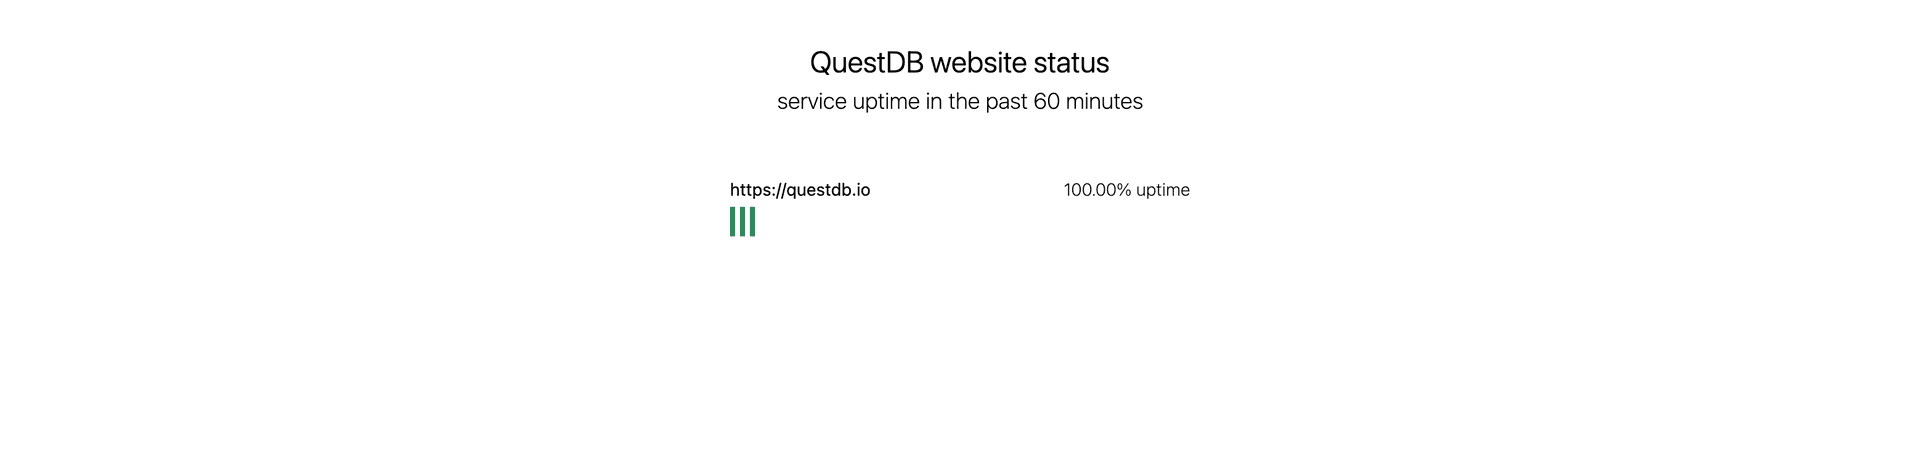 An uptime indicator having fetched the status of the QuestDB website over 3 minutes